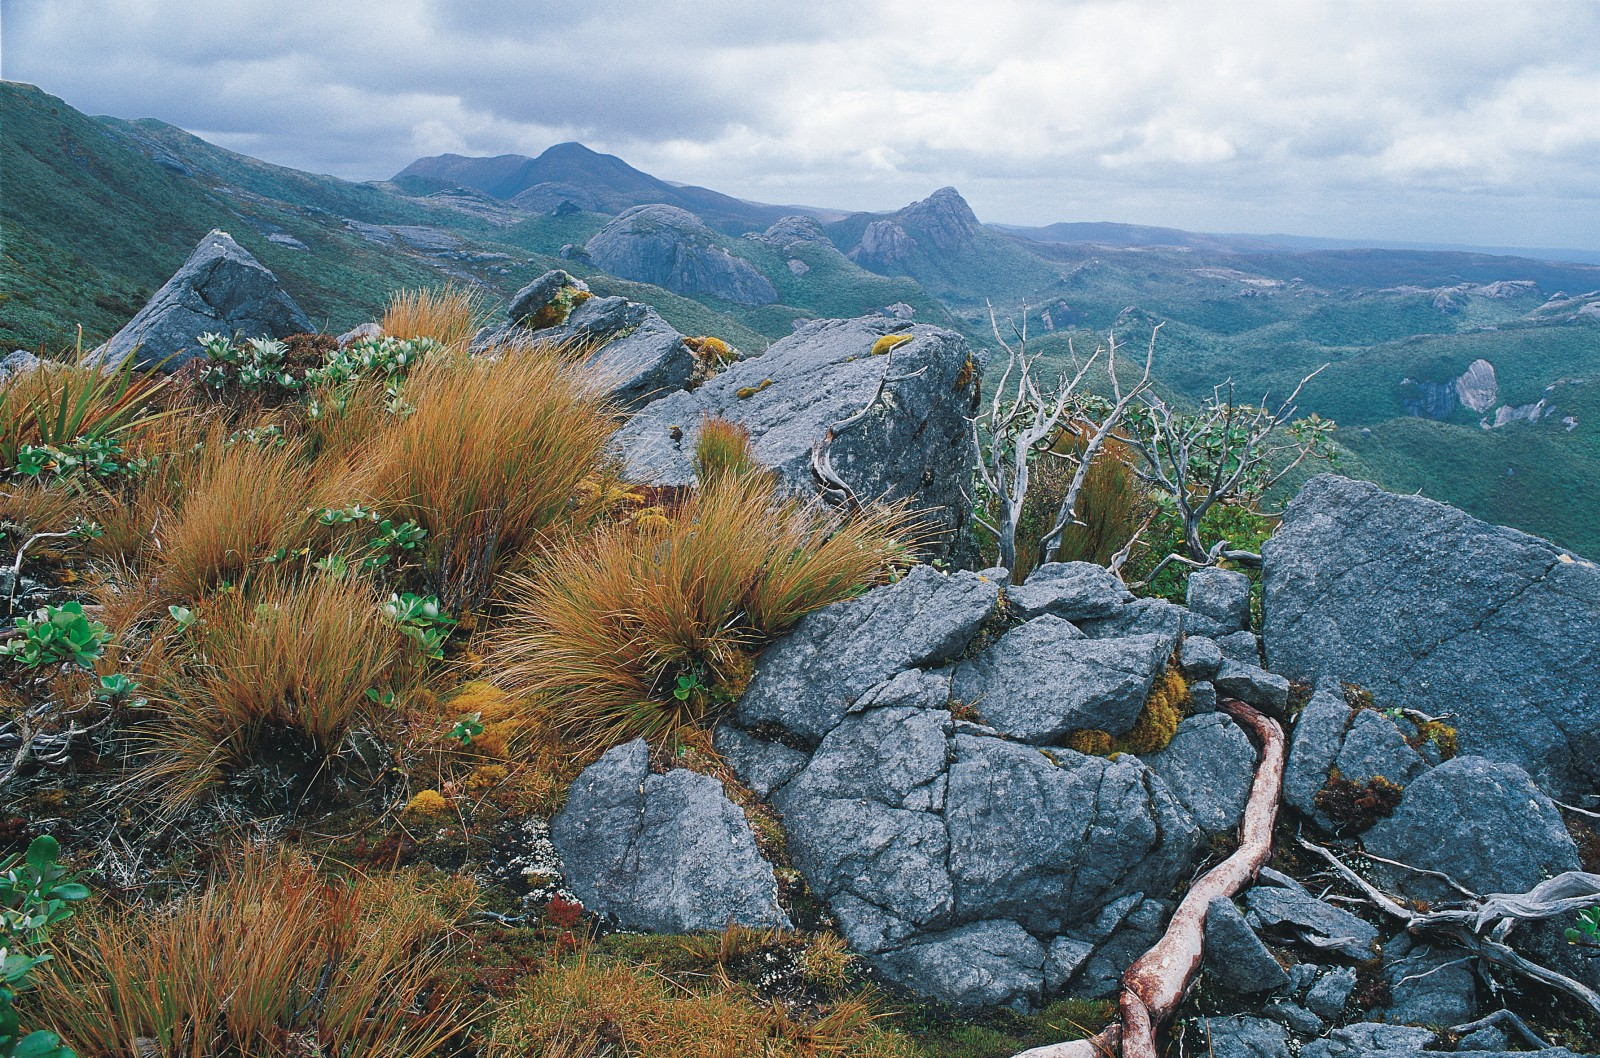 Screaming winds of the RoaringForties combined with shallow, rocky soils discourage any but the hardiest of plants from the higher levels of the Tin Range. Even the stiffly branching leatherwood-an impenetrable menace at lower altitudes-hunkers down here amongst the schist outcrops. The background granite domes protruding through a blanket of vegetation are the signature landscape of this area.